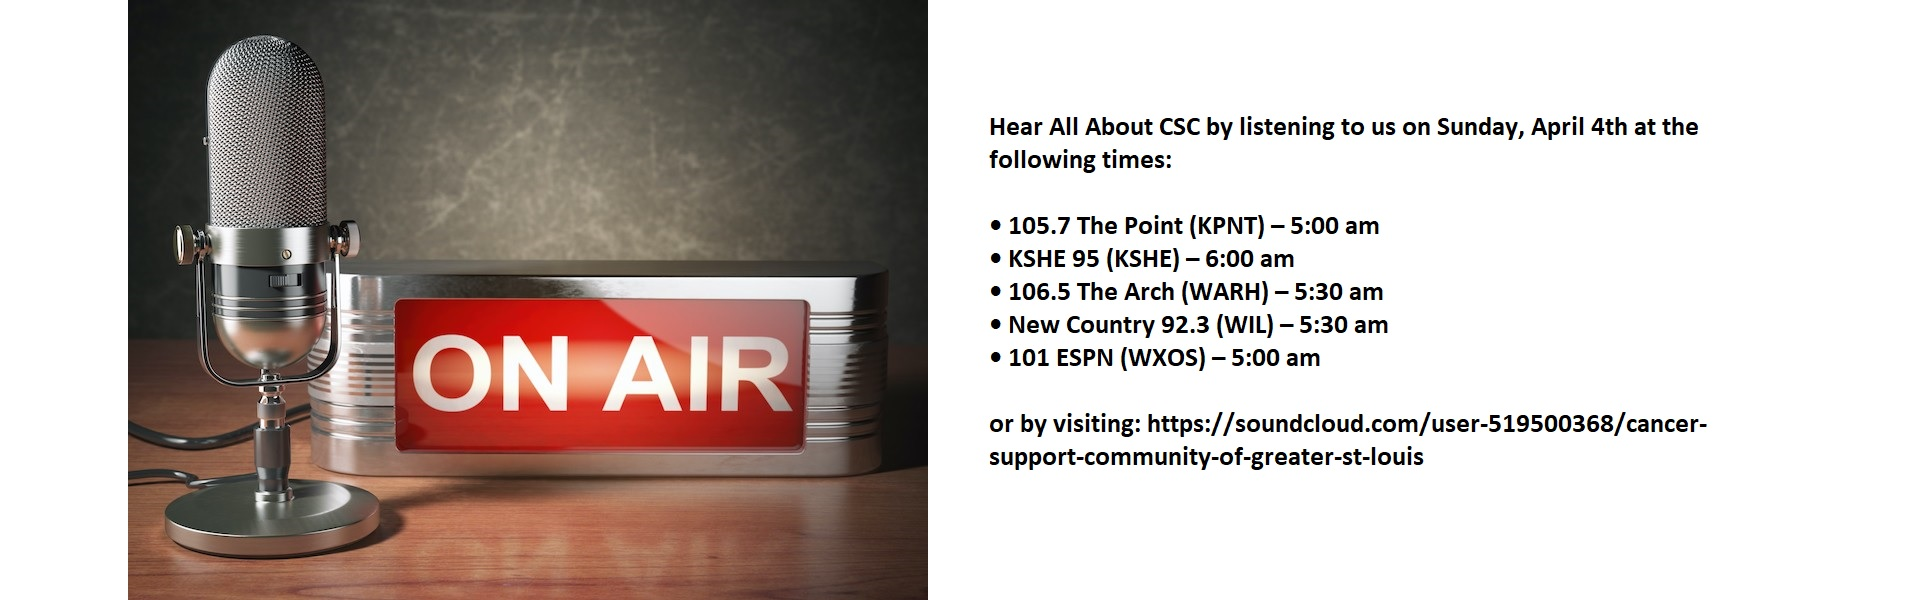 Listen to us on air!